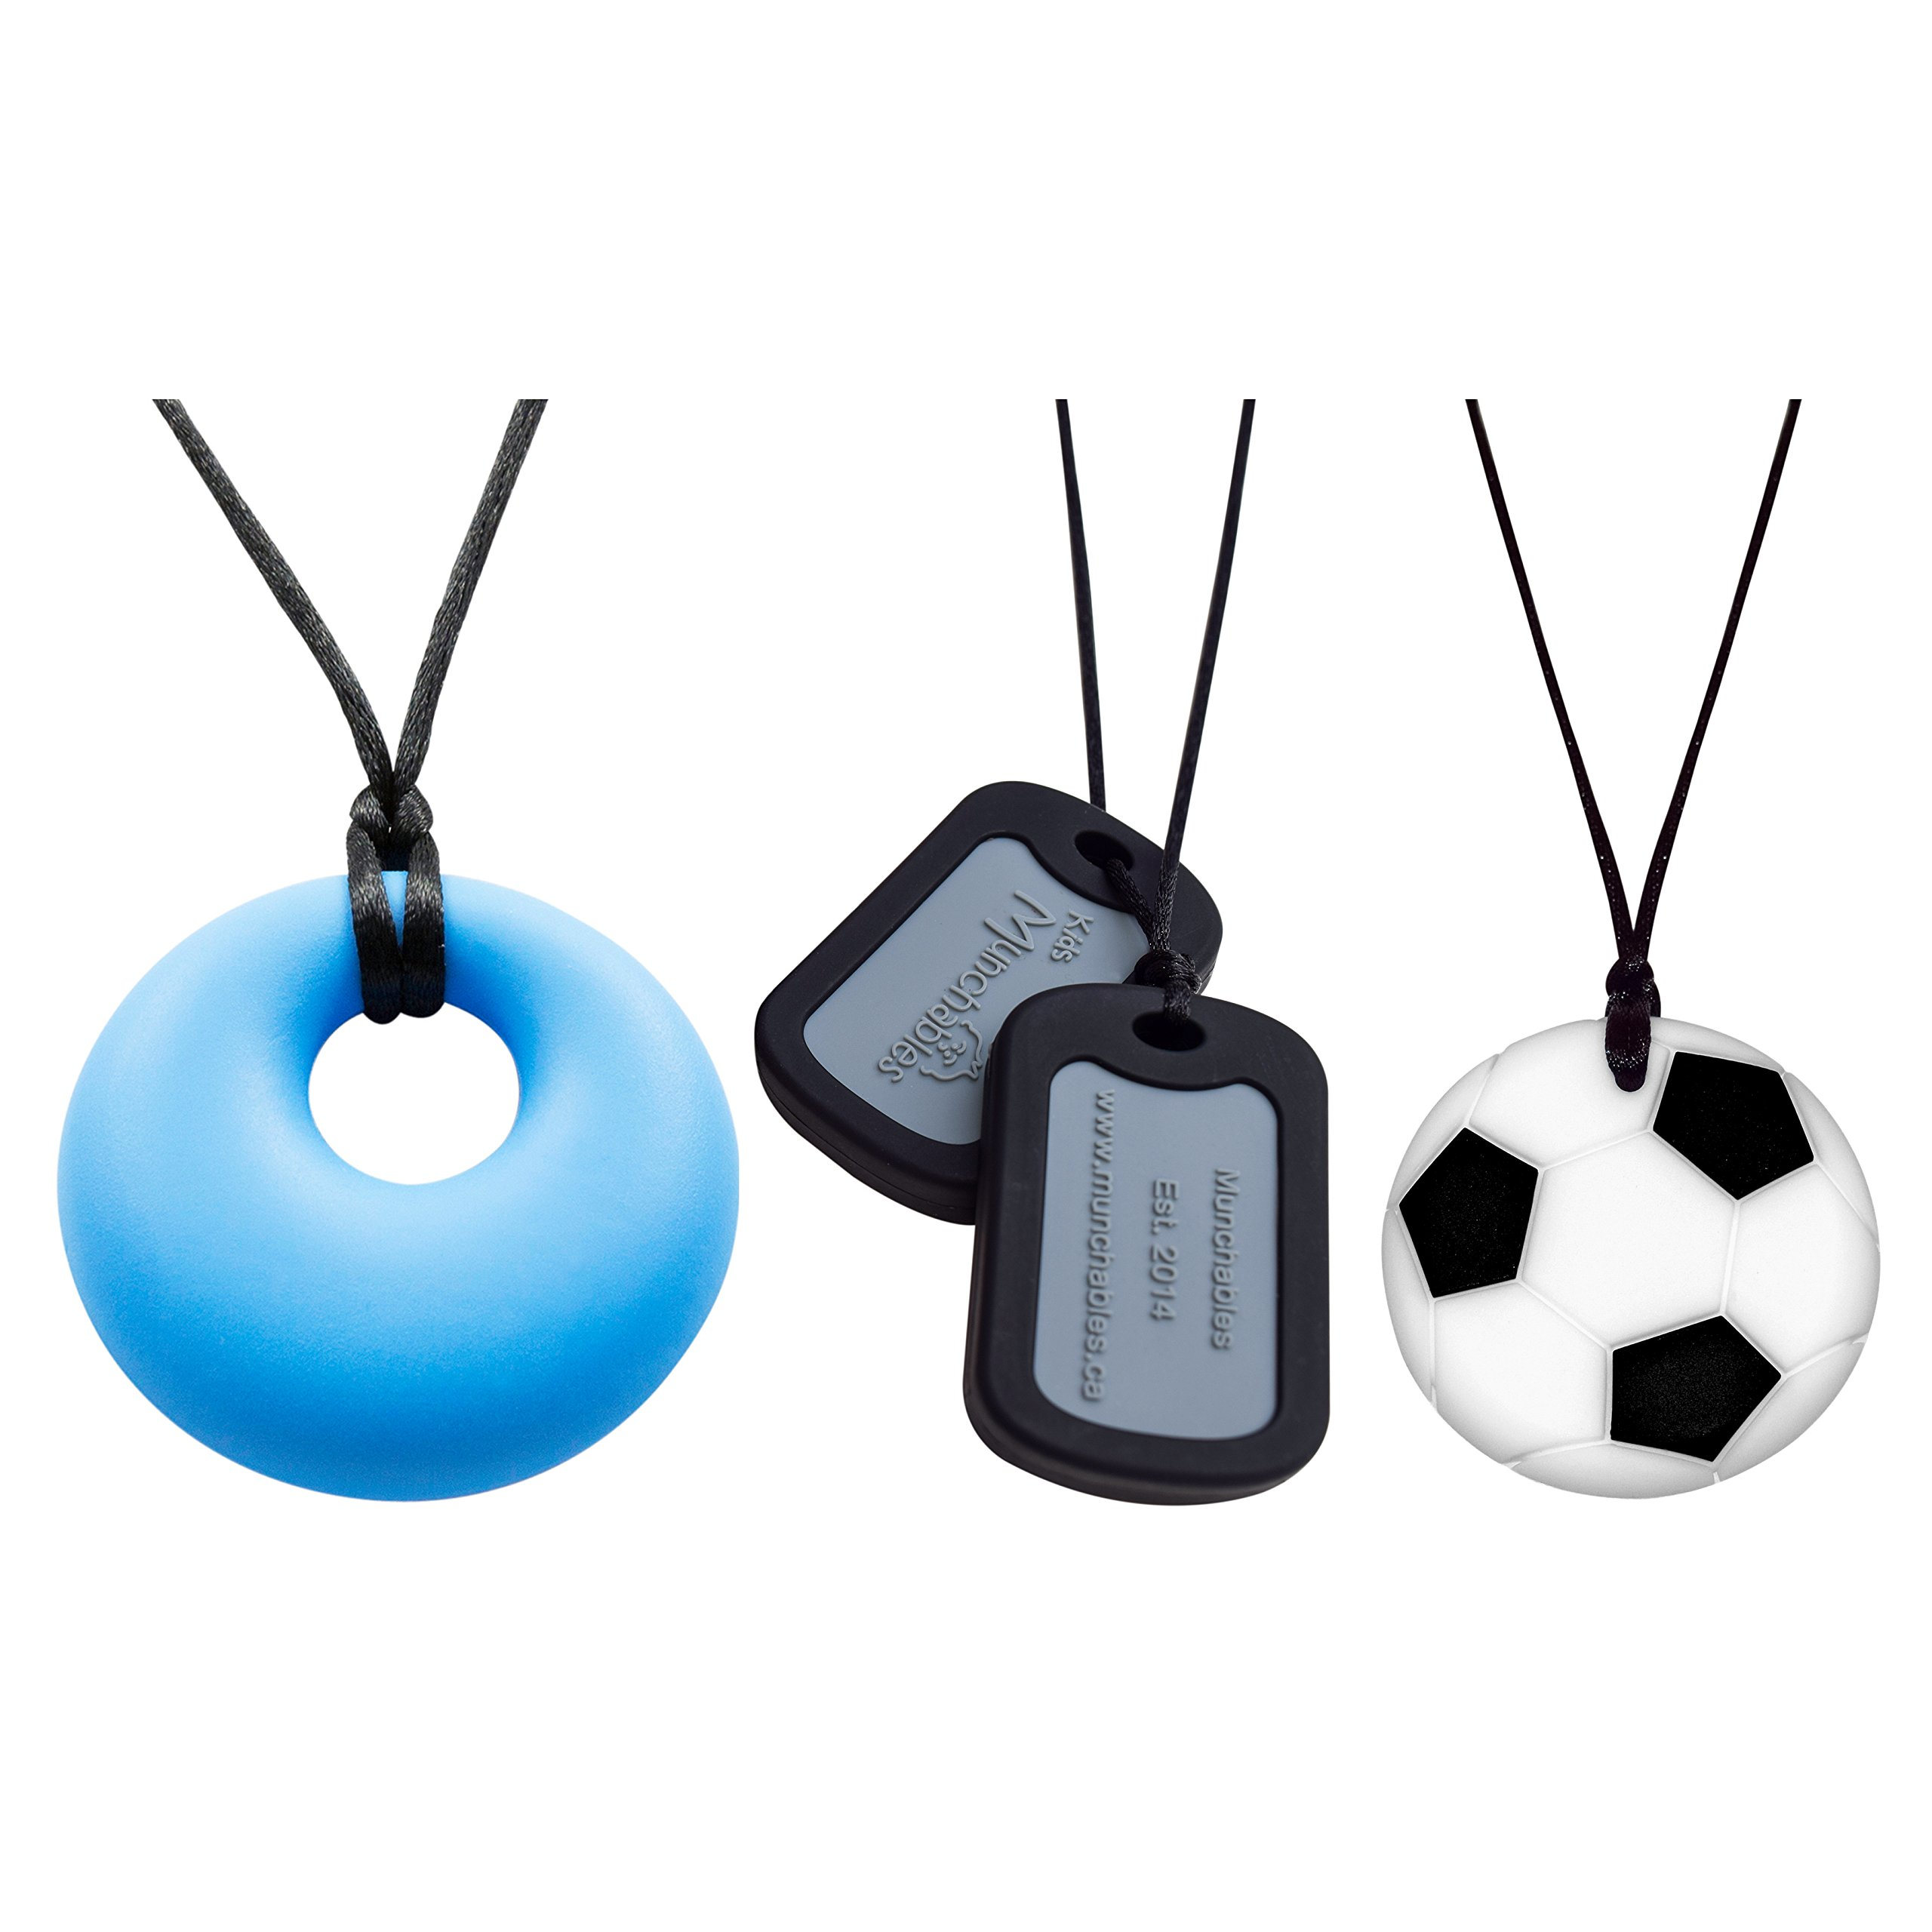 Boys' Chewelry Combo - Chewy Necklaces - Black Dog Tags, Soccer Ball and Blue Yummy Gummy